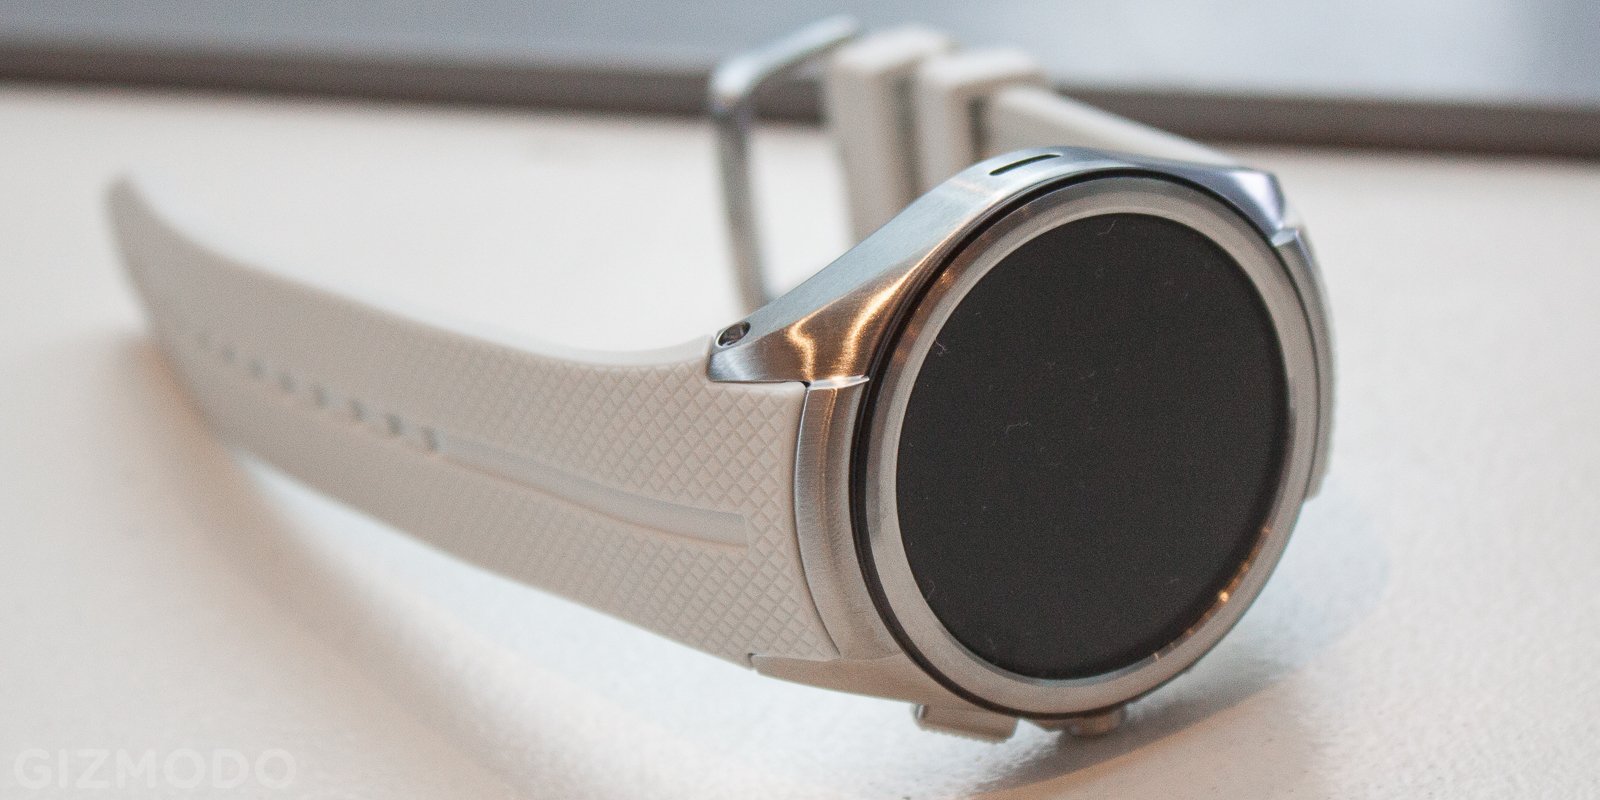 LG Watch Urbane 2 handson (2)